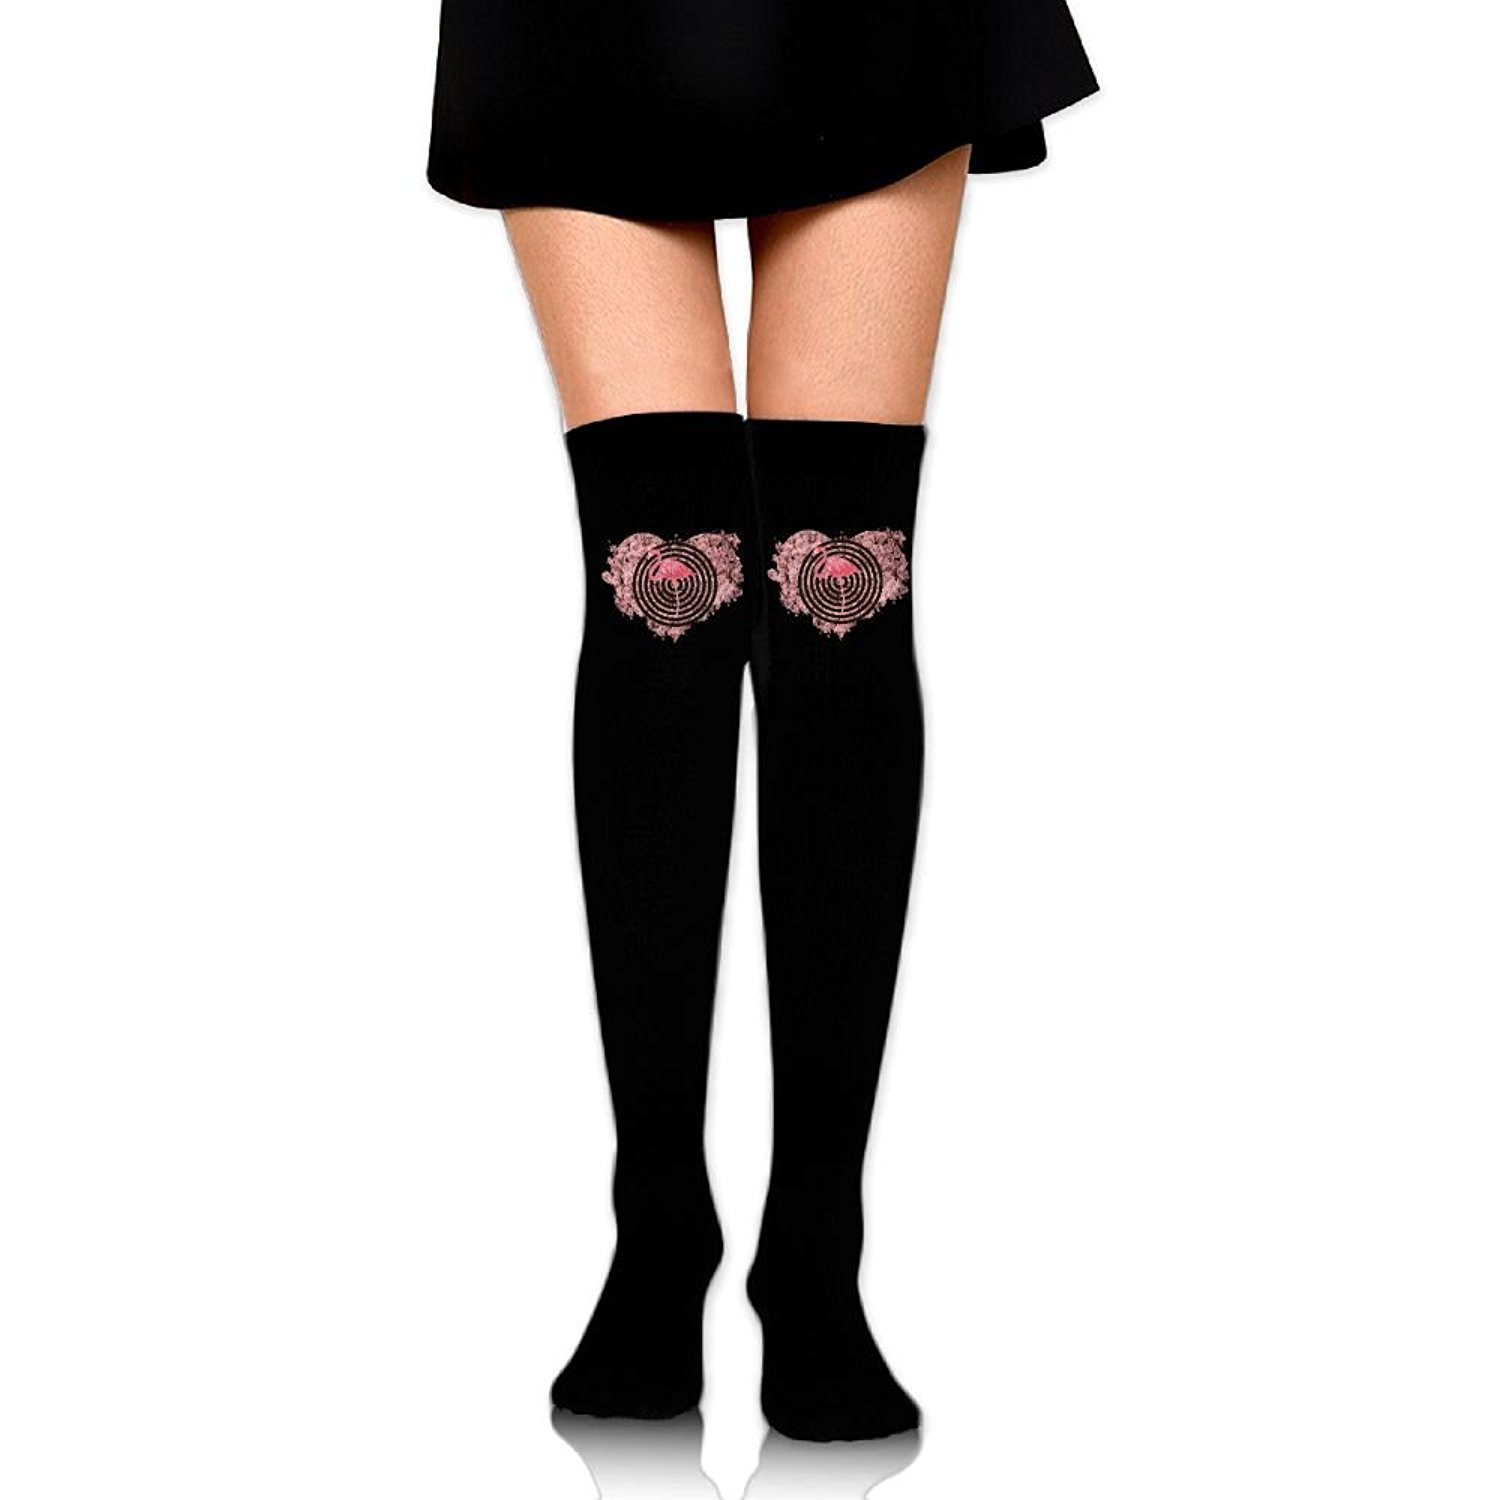 High Elasticity Girl Cotton Knee High Socks Uniform Color Pineapple Women Tube Socks